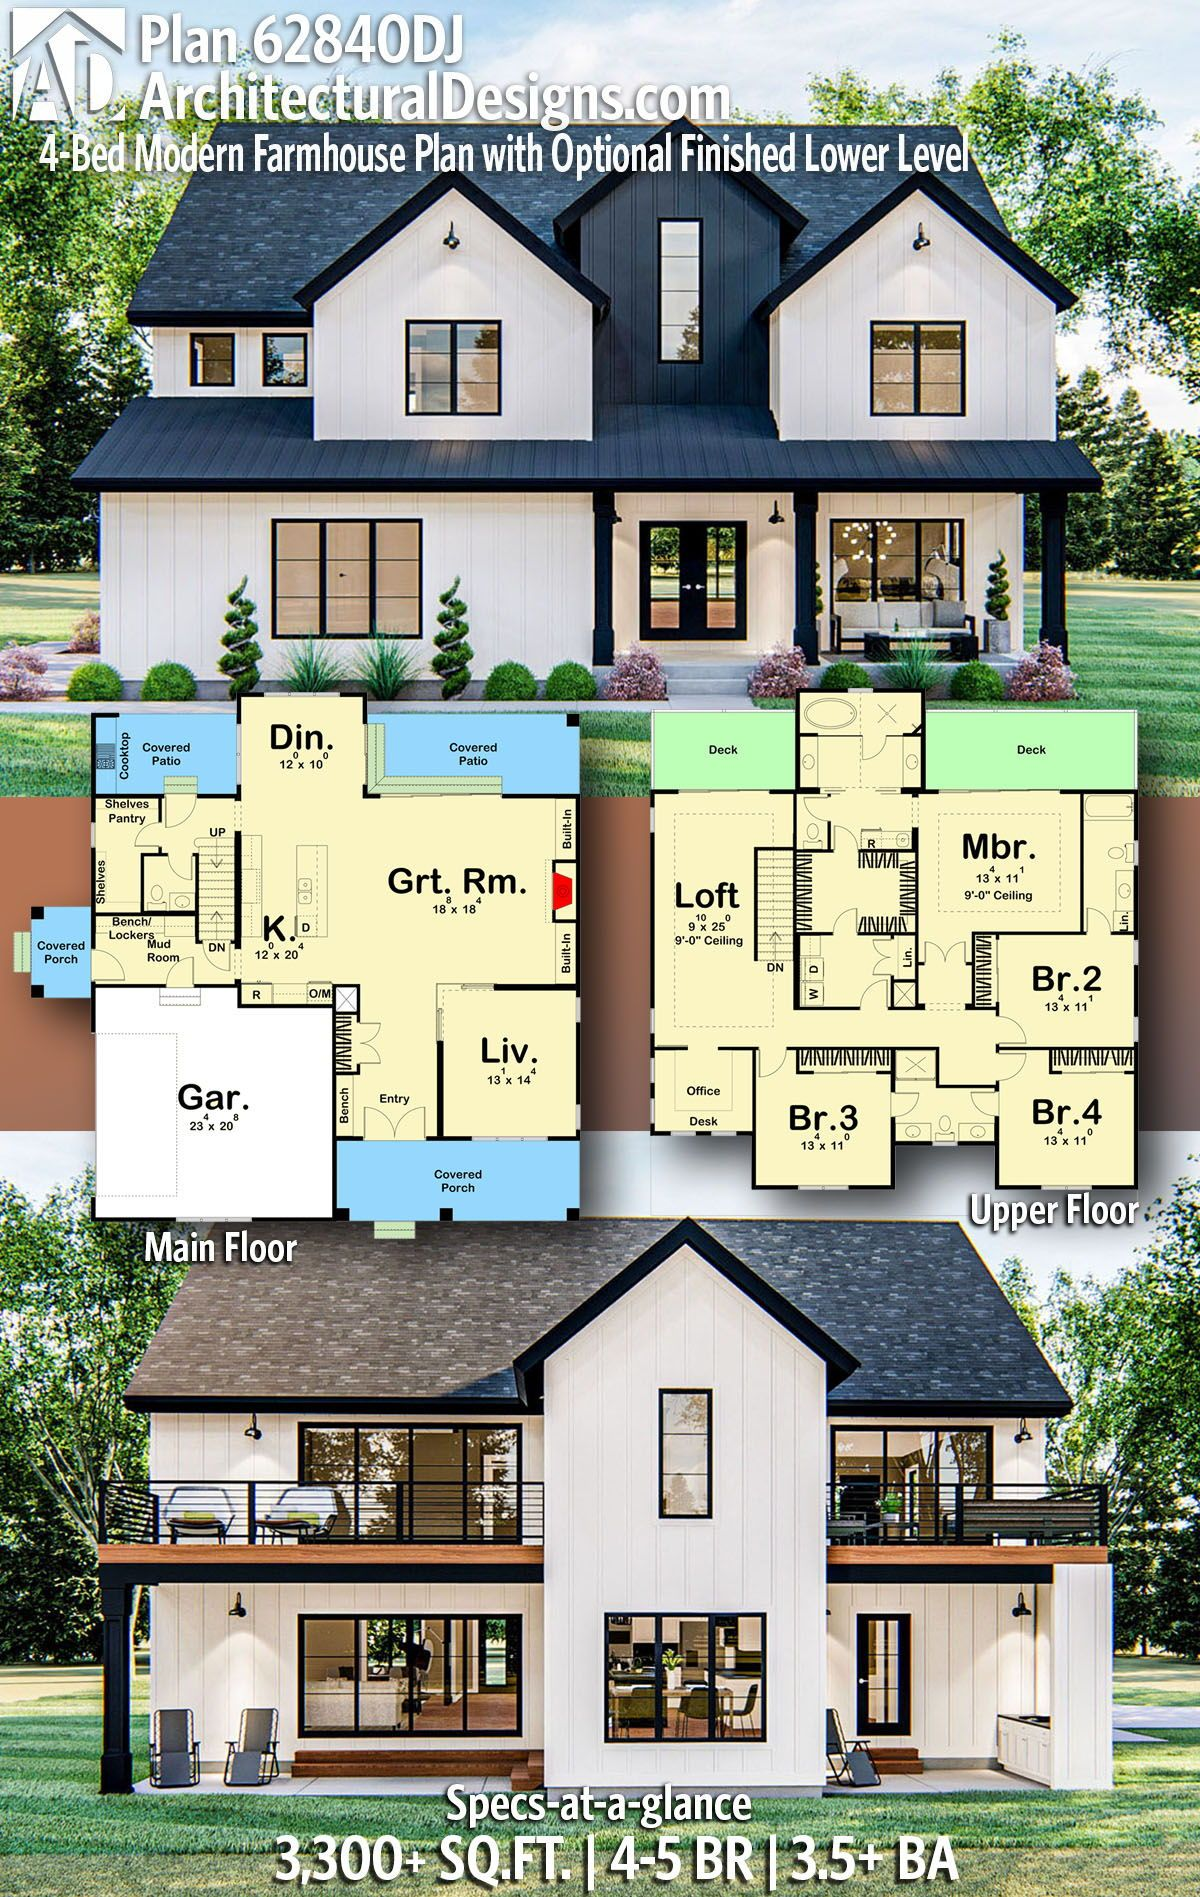 House Plan 62840DJ: 4-Bed Modern Farmhouse Plan with Optional Finished Lower Level